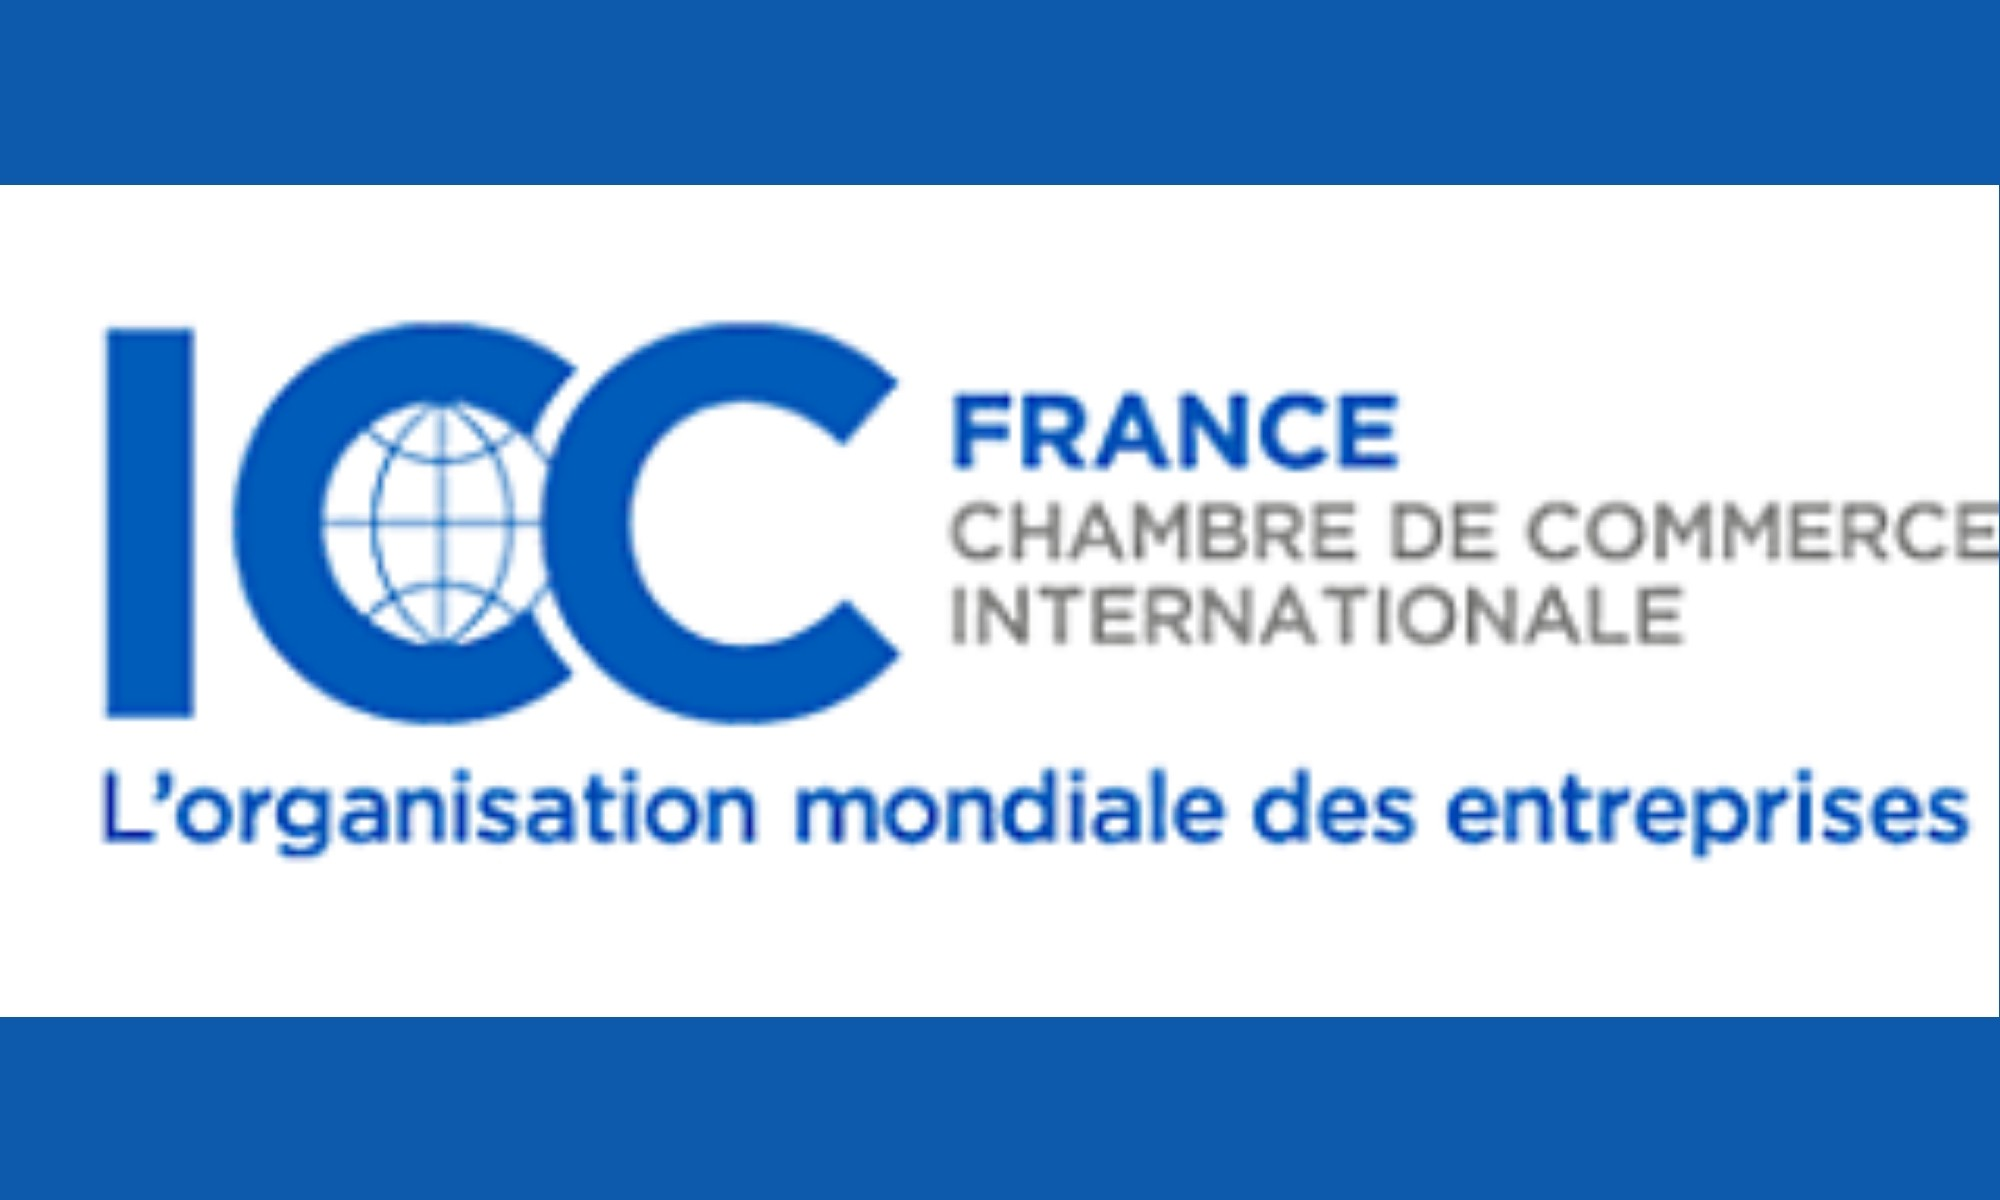 Chambre De Commerce Internationale Formations Trade Finance D Icc France La Chambre De Commerce